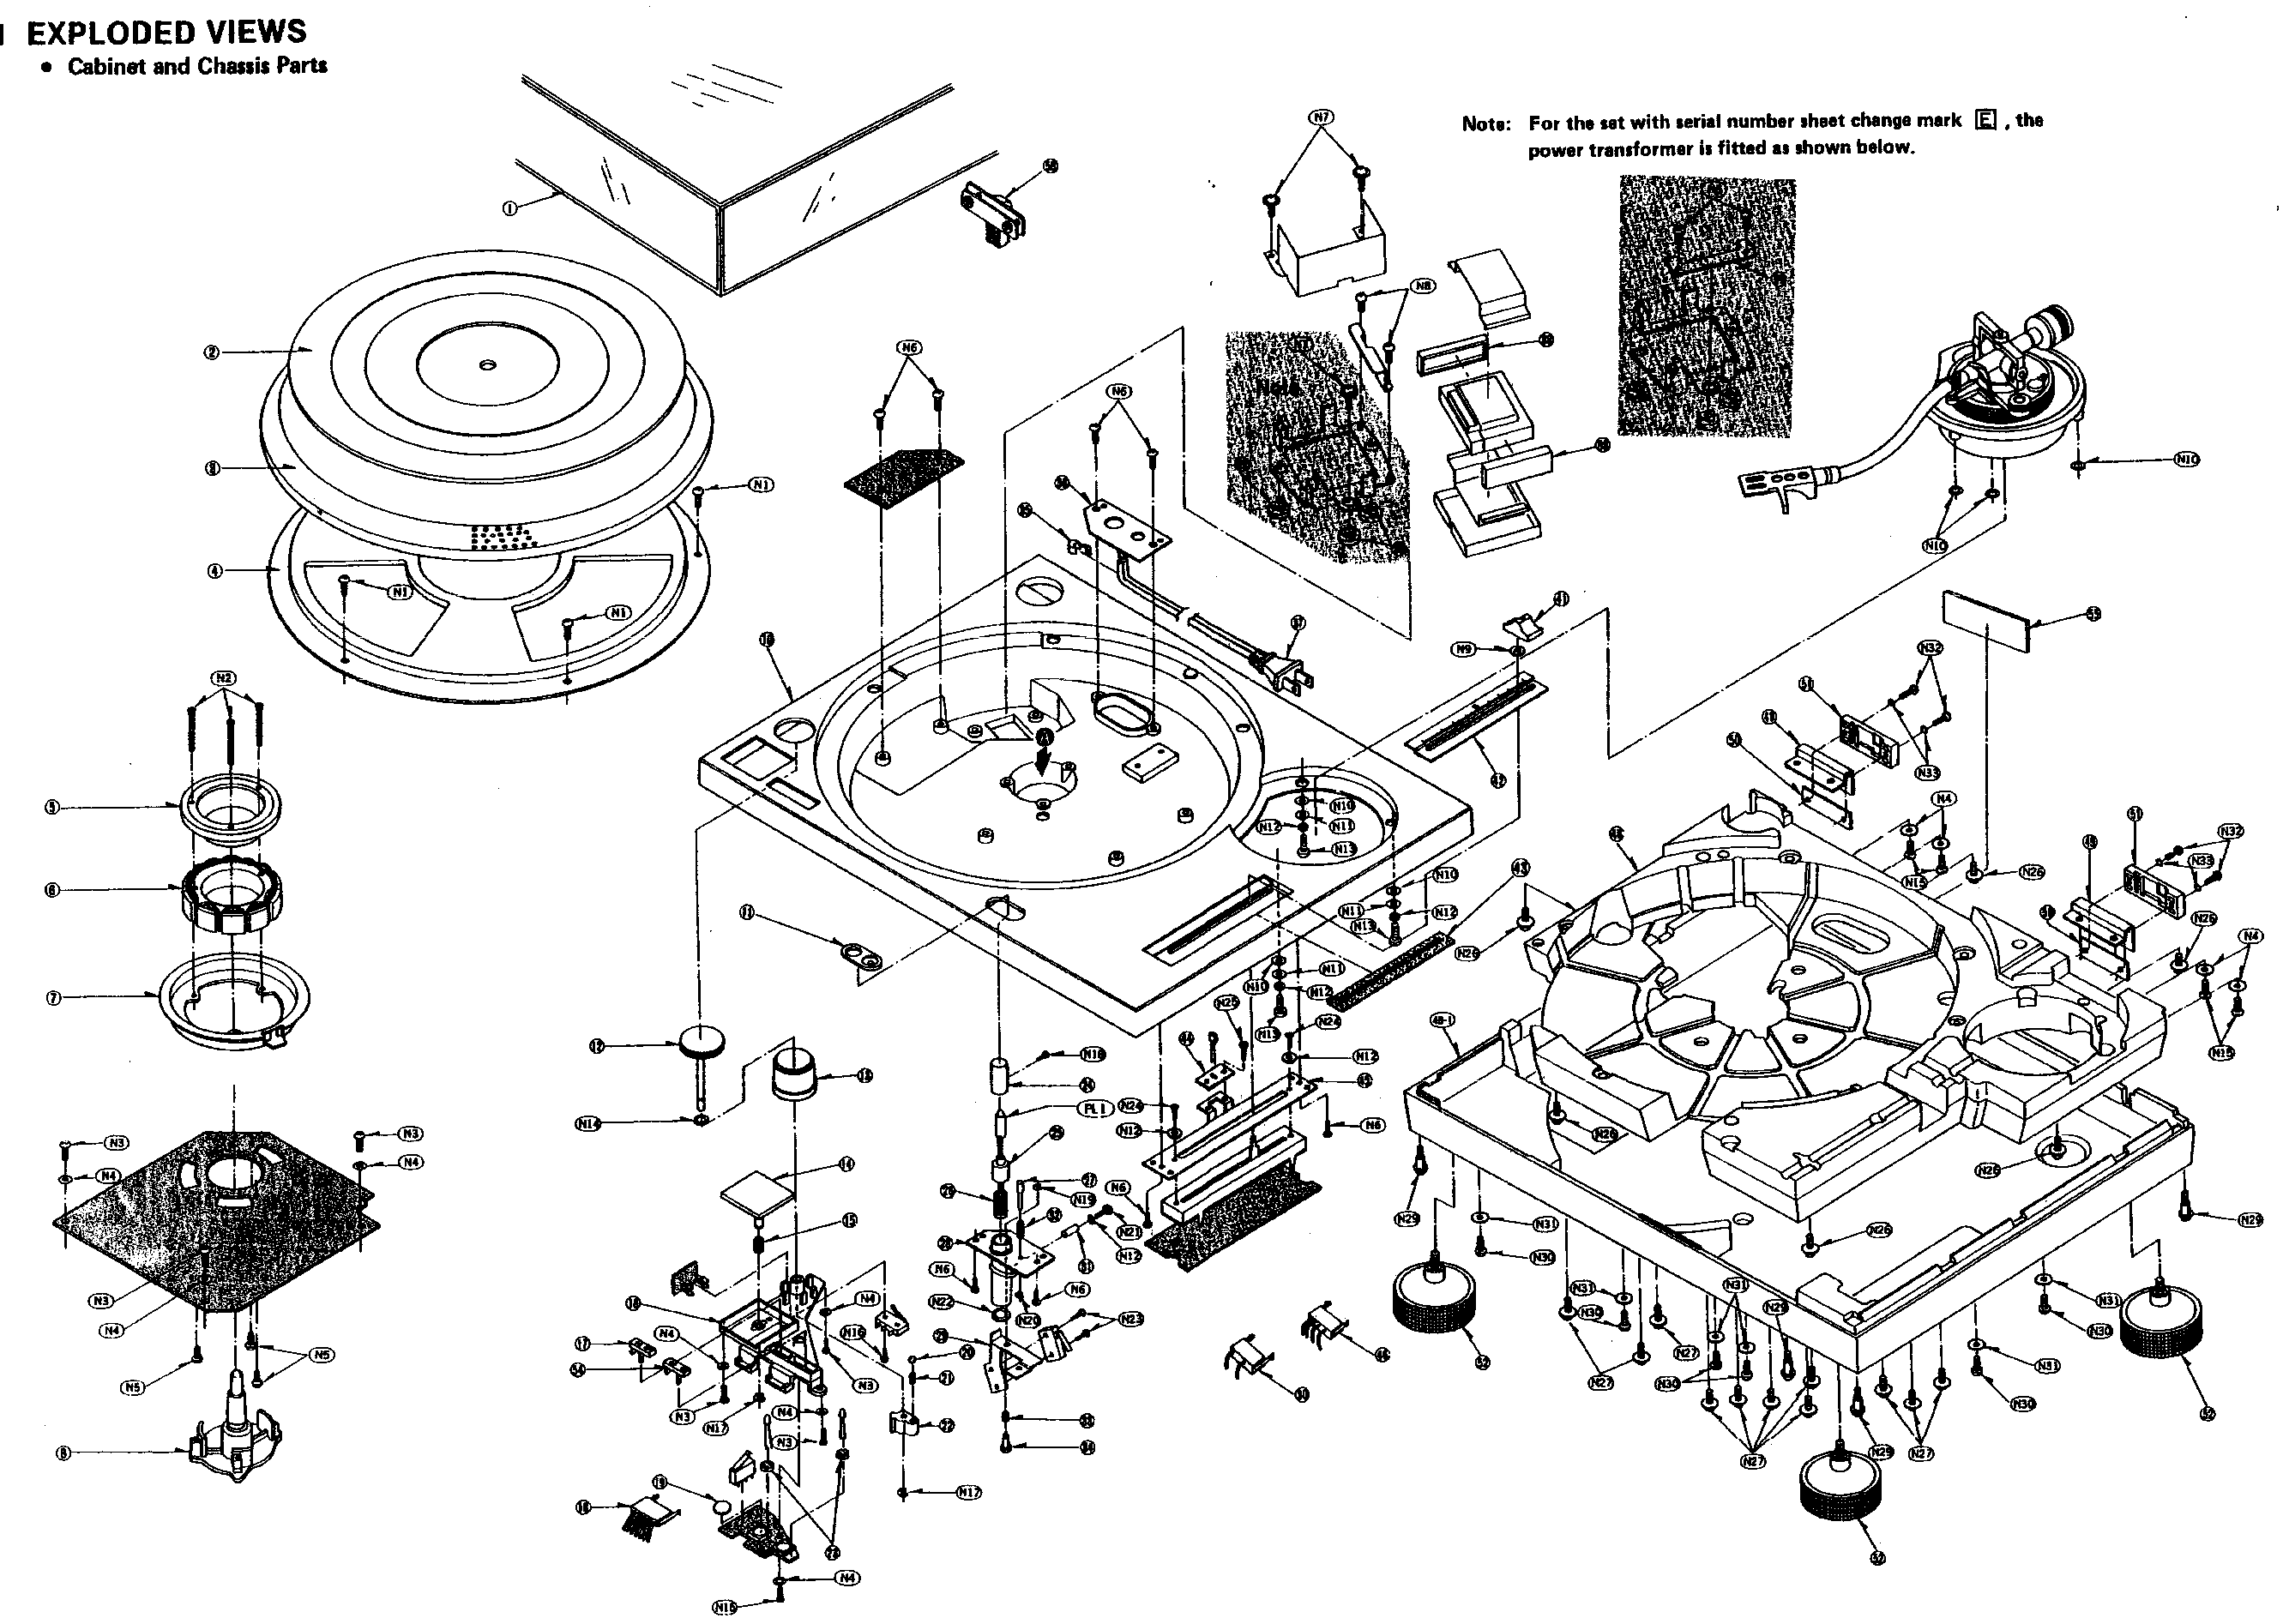 It S Not That Complicated Exploded View Of A Technics